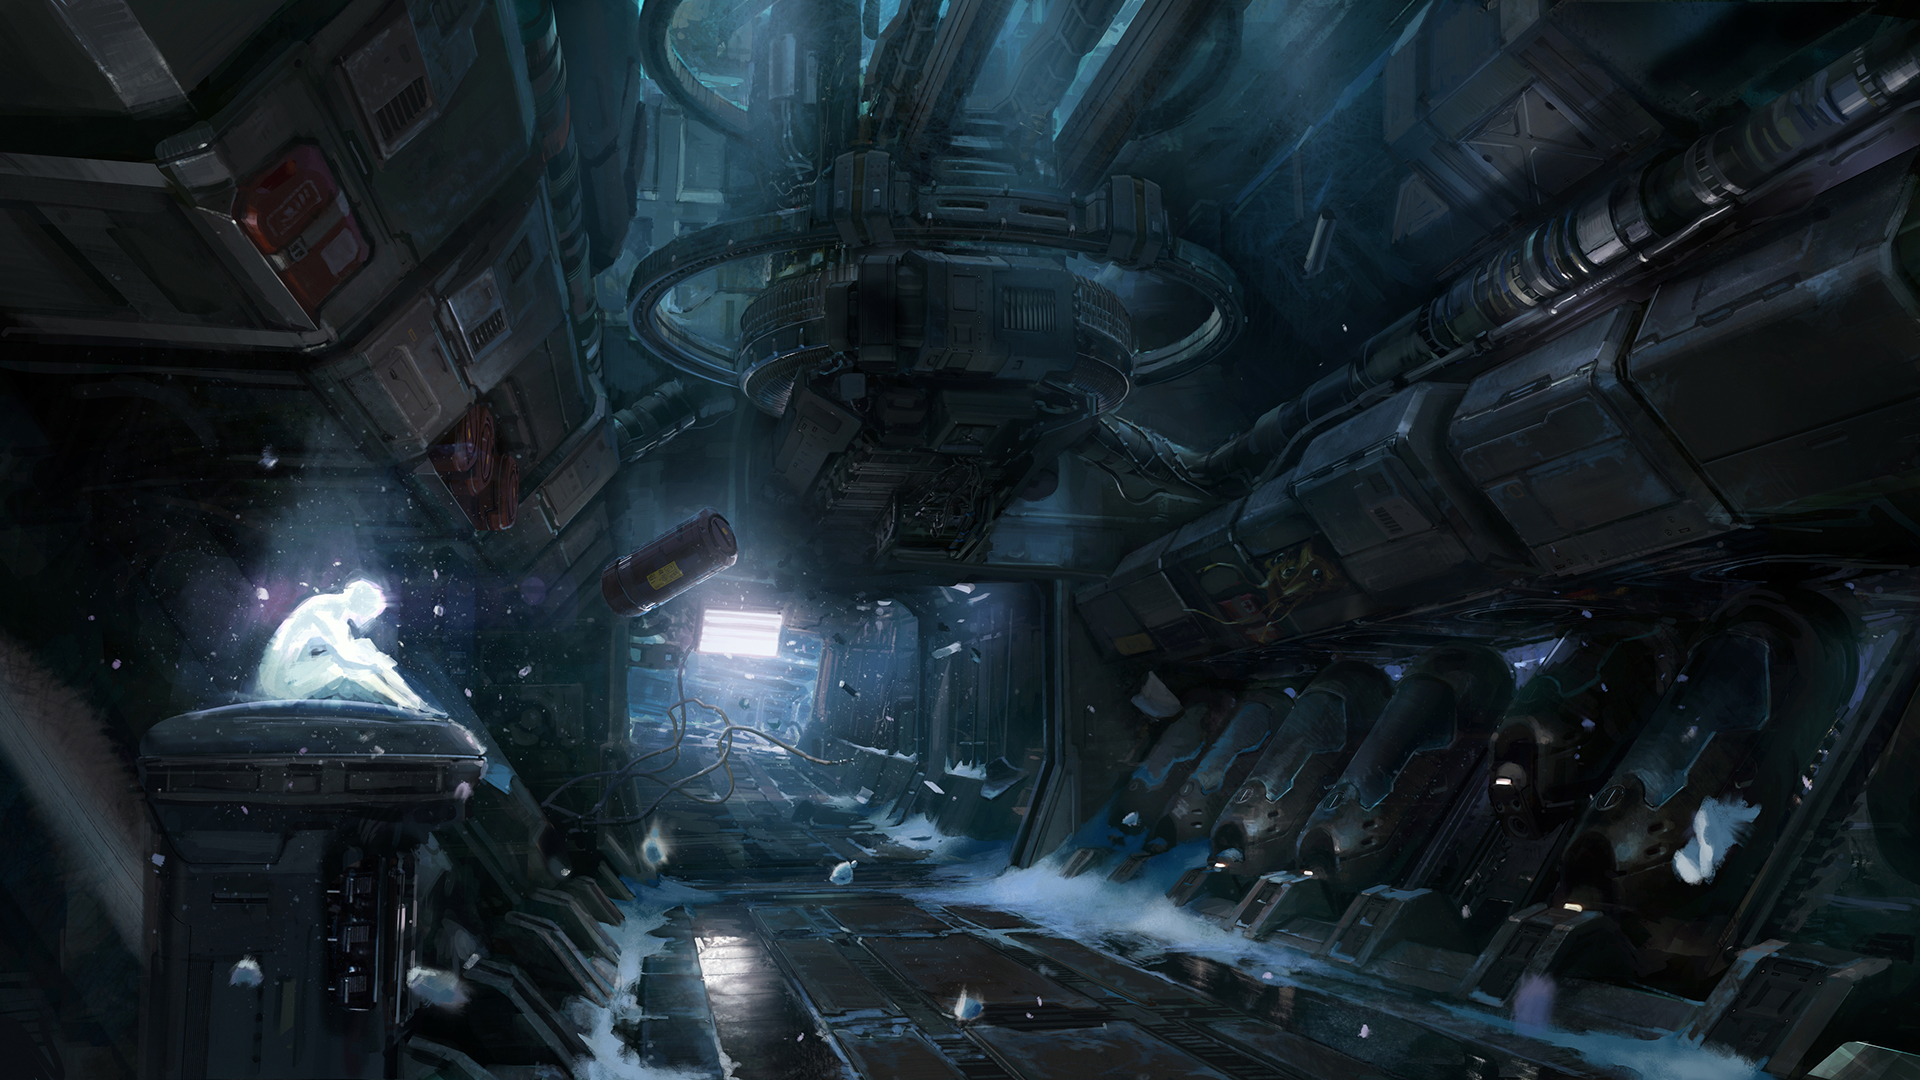 Halo 4 games halo official site for The apartment design your destiny episode 1